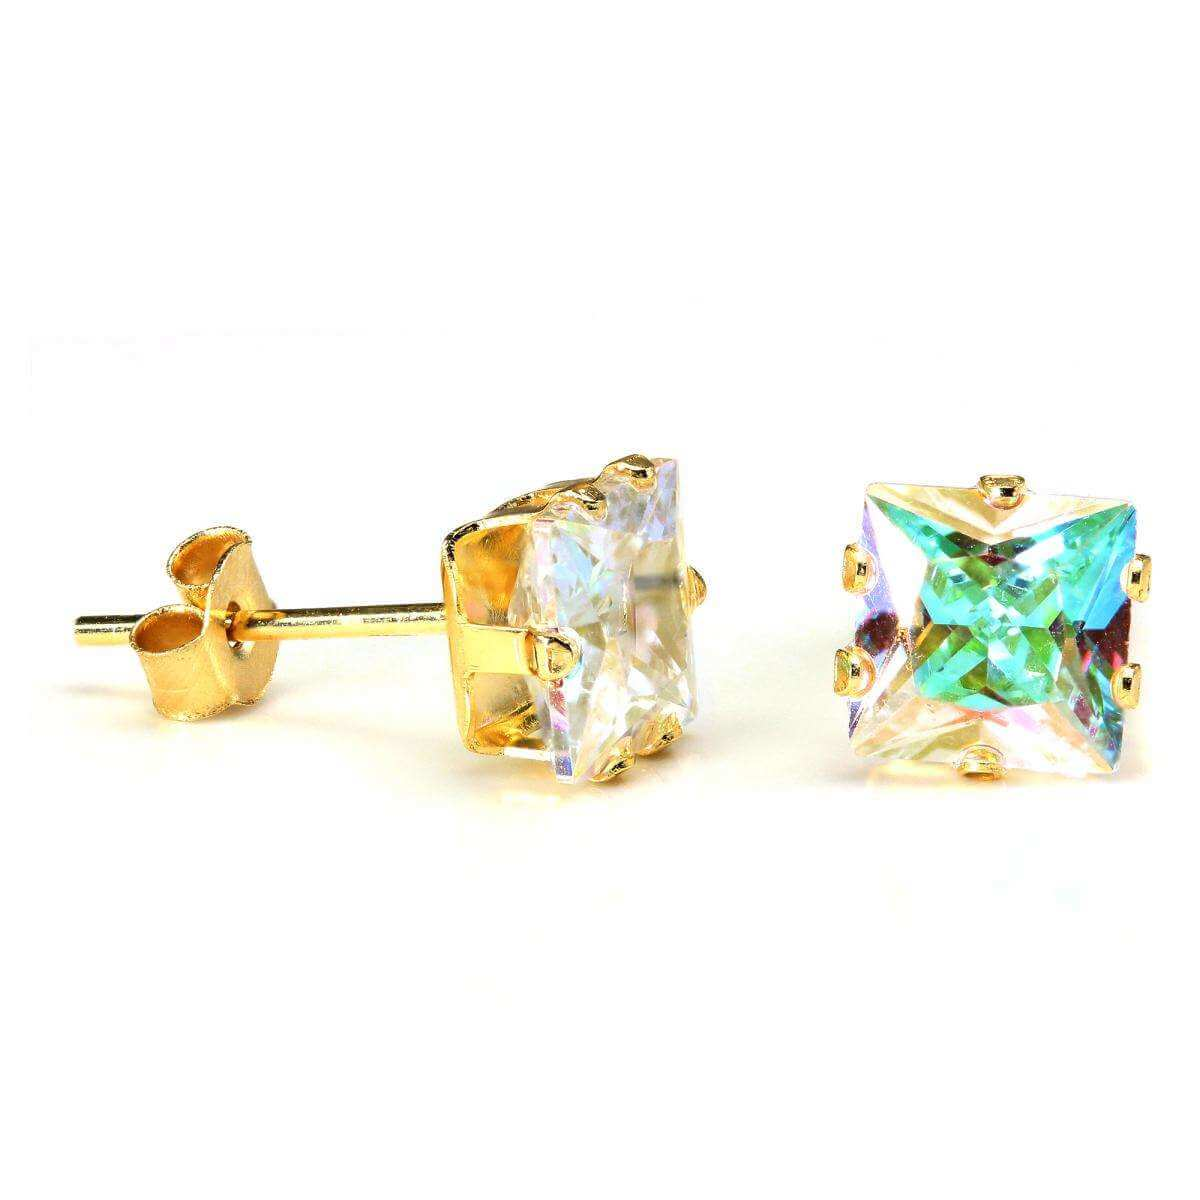 9ct Gold & 6mm Square Aurora Borealis Crystal Stud Earrings